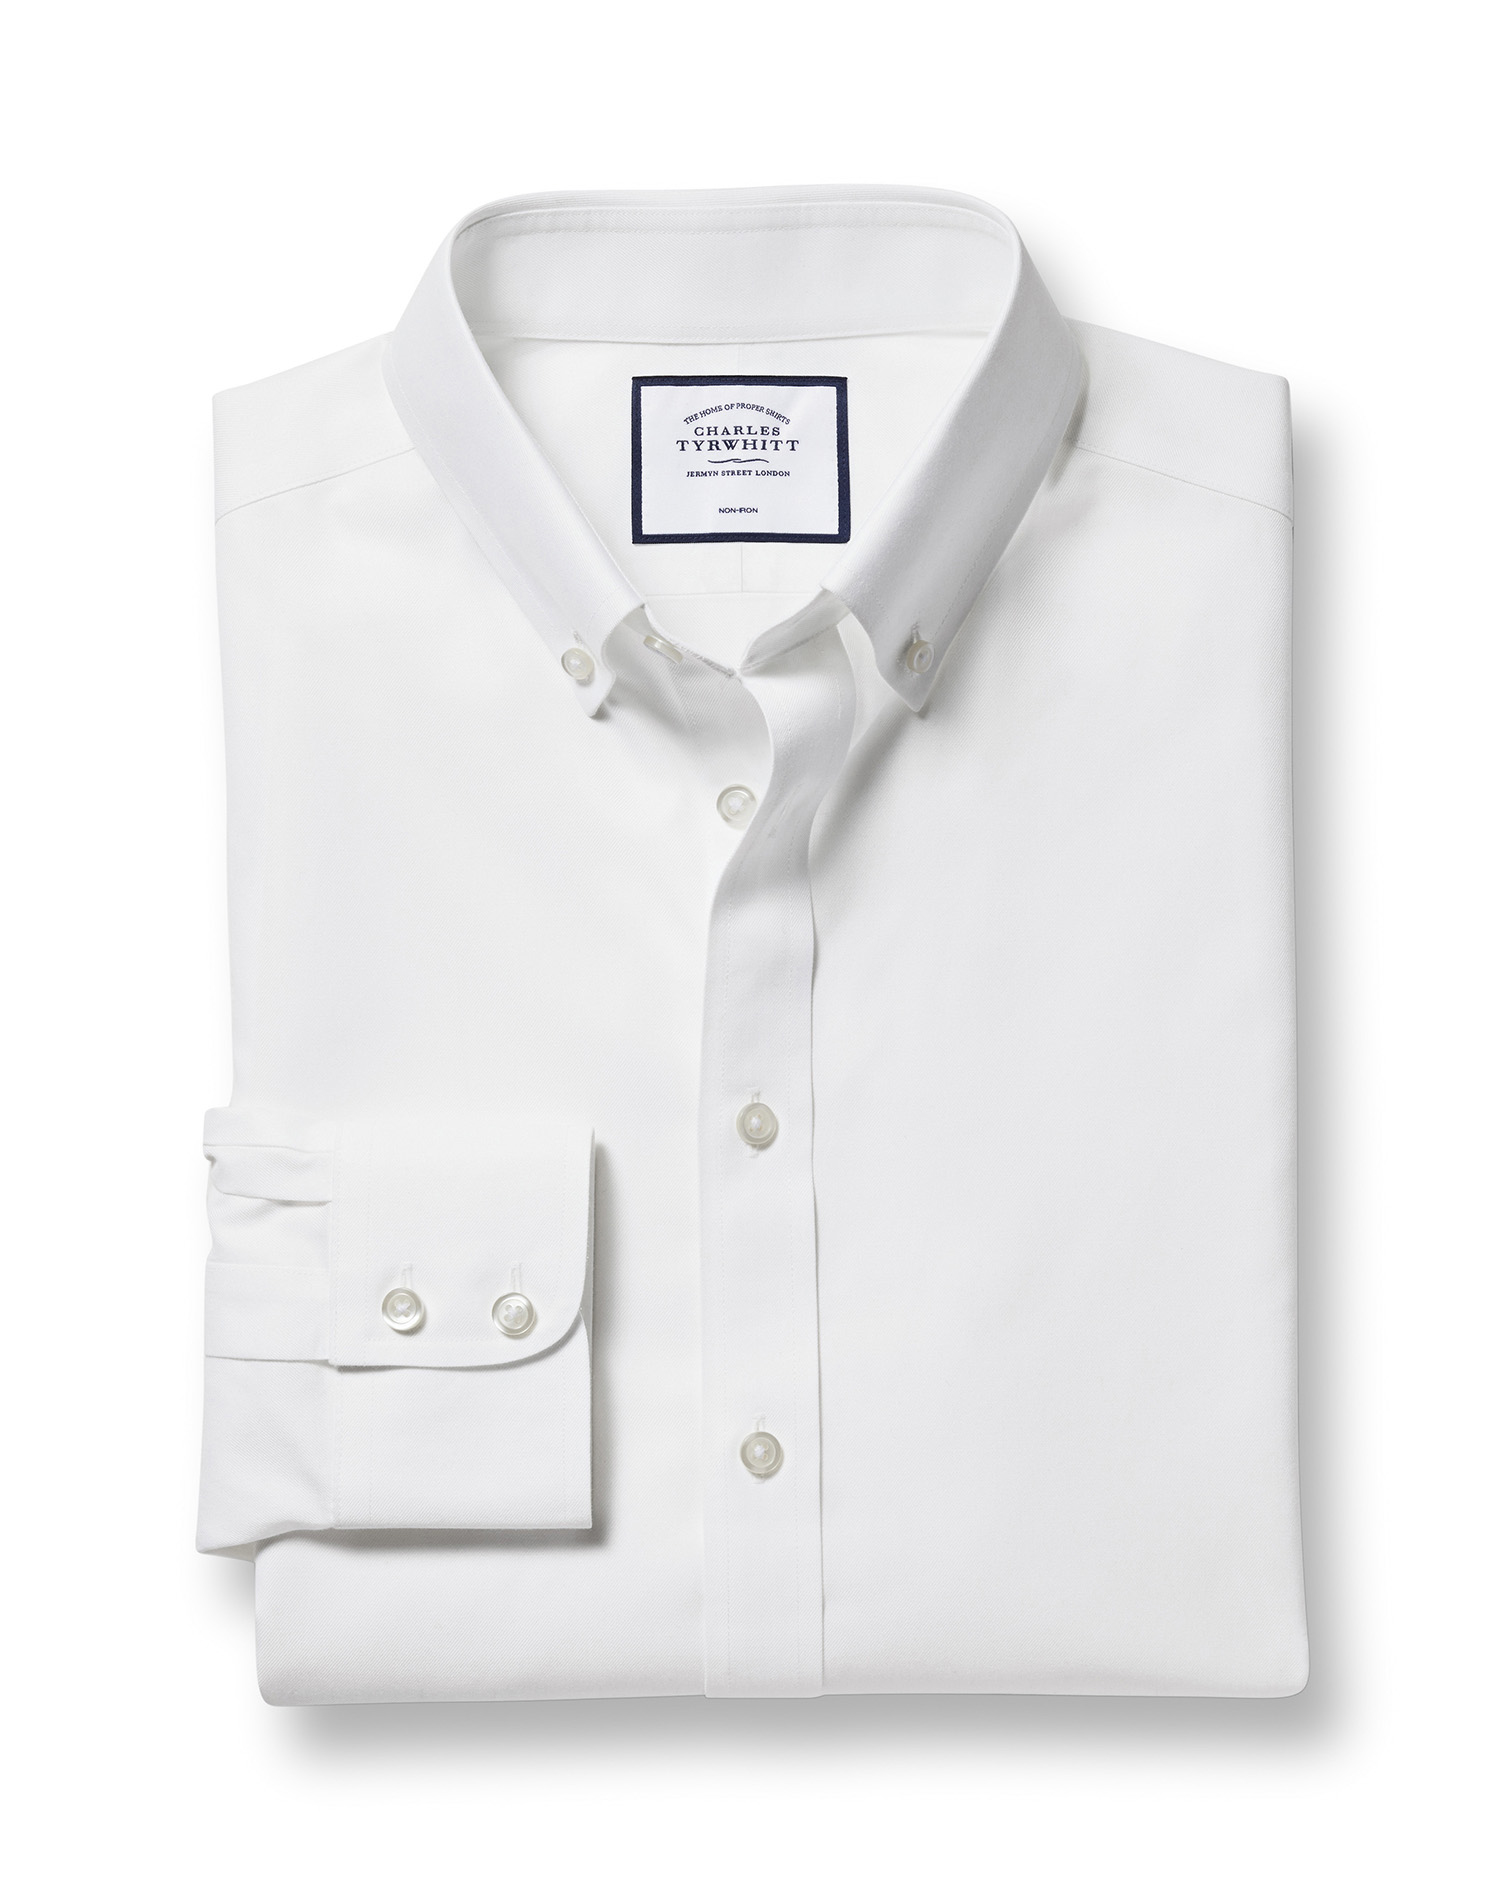 Classic Fit Button-Down Non-Iron Twill White Cotton Formal Shirt Single Cuff Size 17.5/38 by Charles